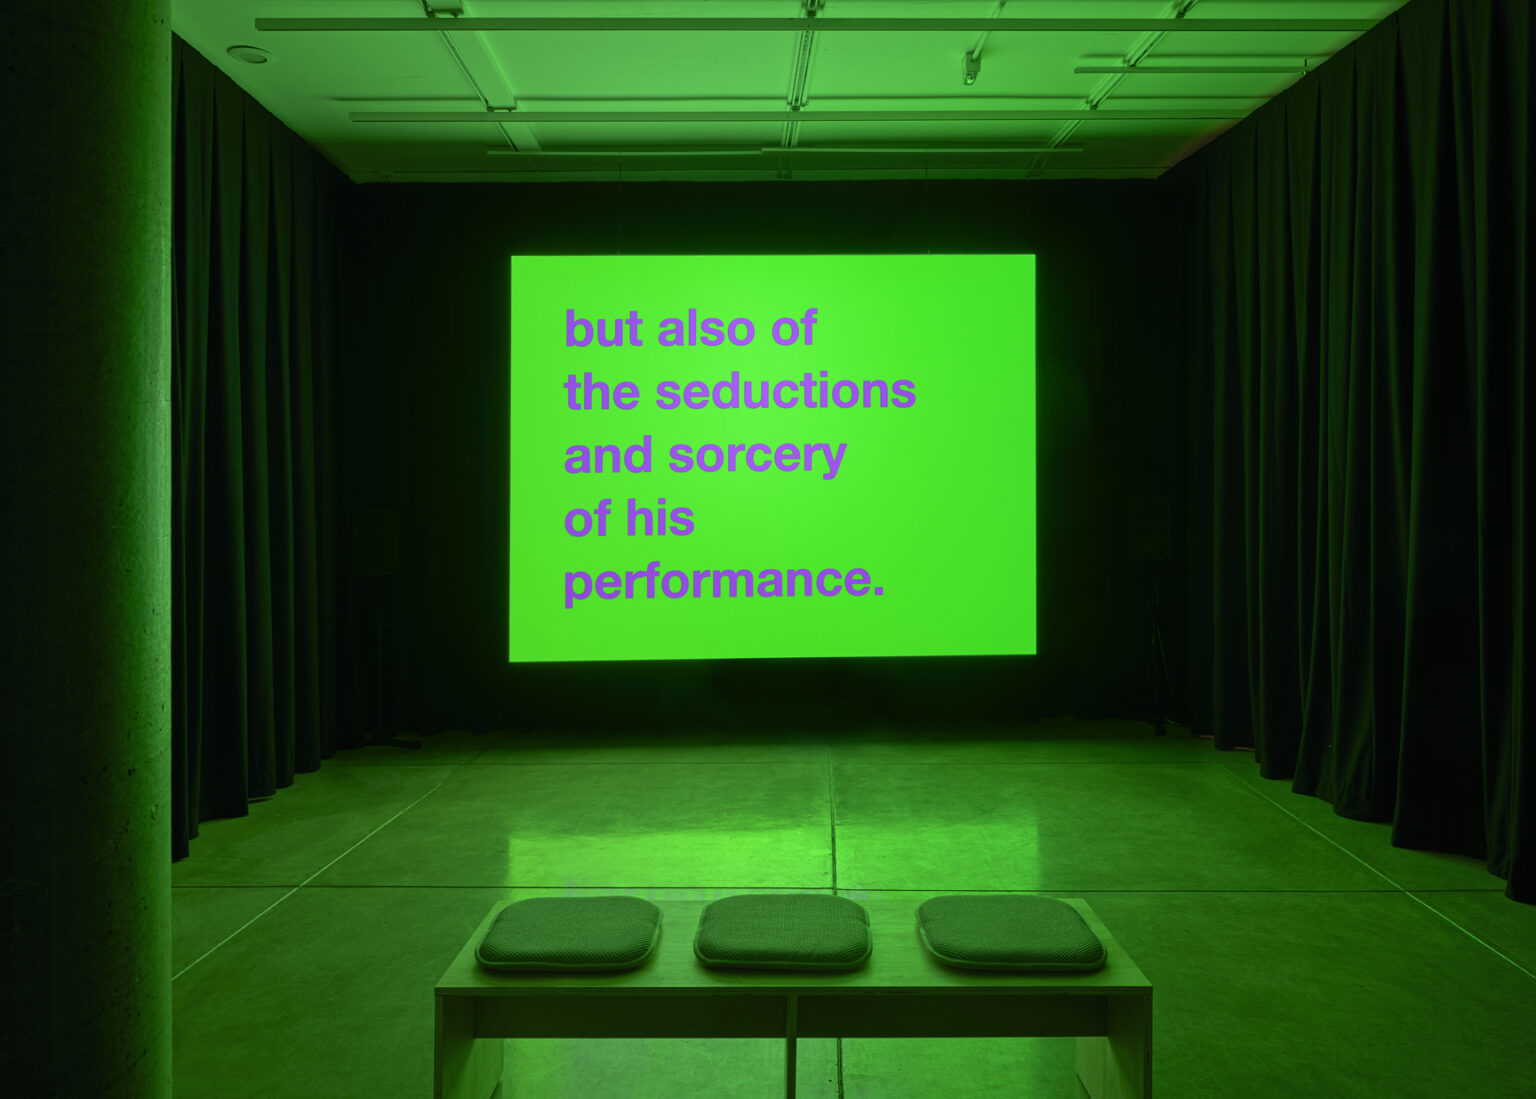 """room bathed in green light with a projection of """"but also if the seductions and sorcery of his performance."""""""